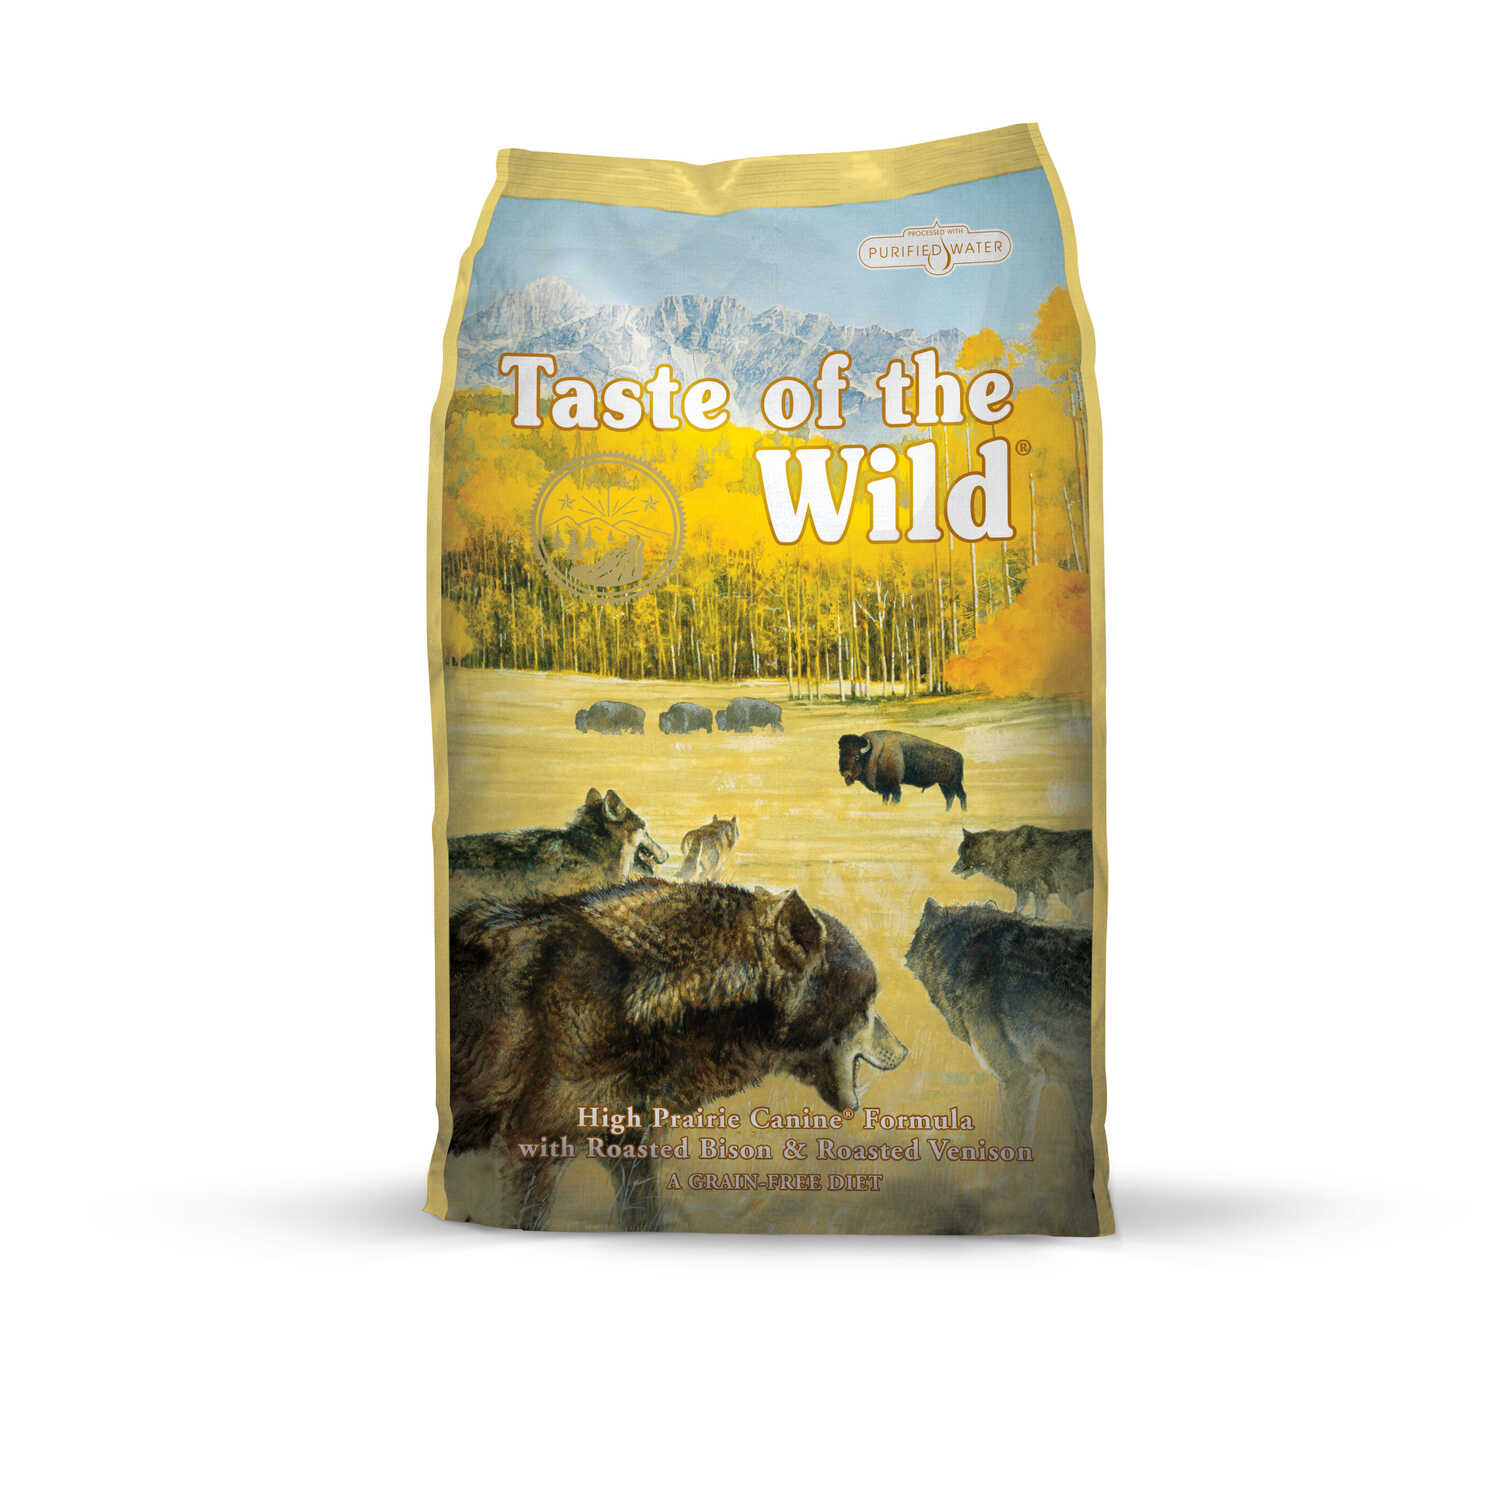 Taste of the Wild  High Prairie  Bison  Dog  Food  Grain Free 5 lb.